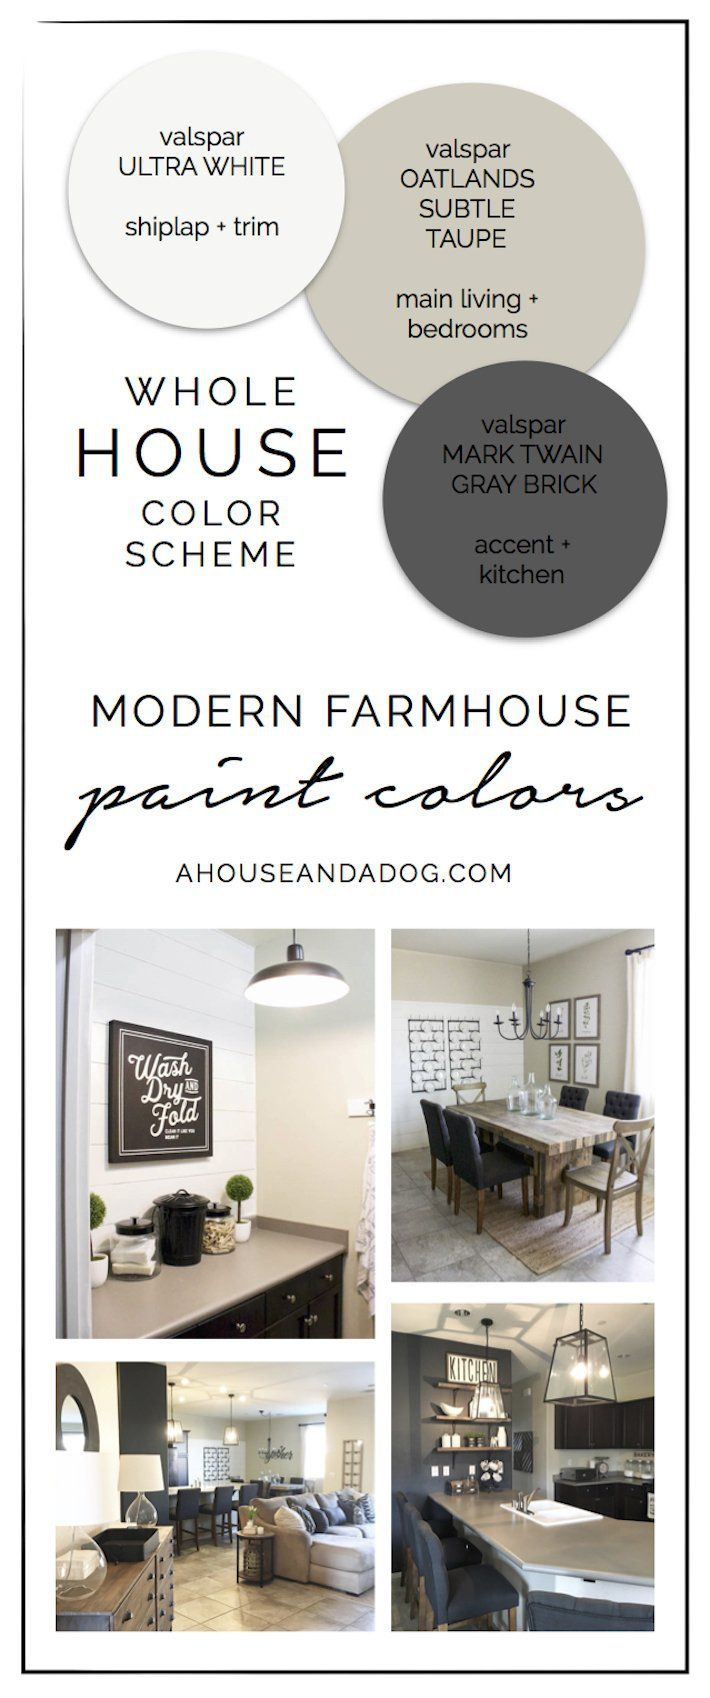 Whole house color scheme modern farmhouse paint colors ahouseandadog com